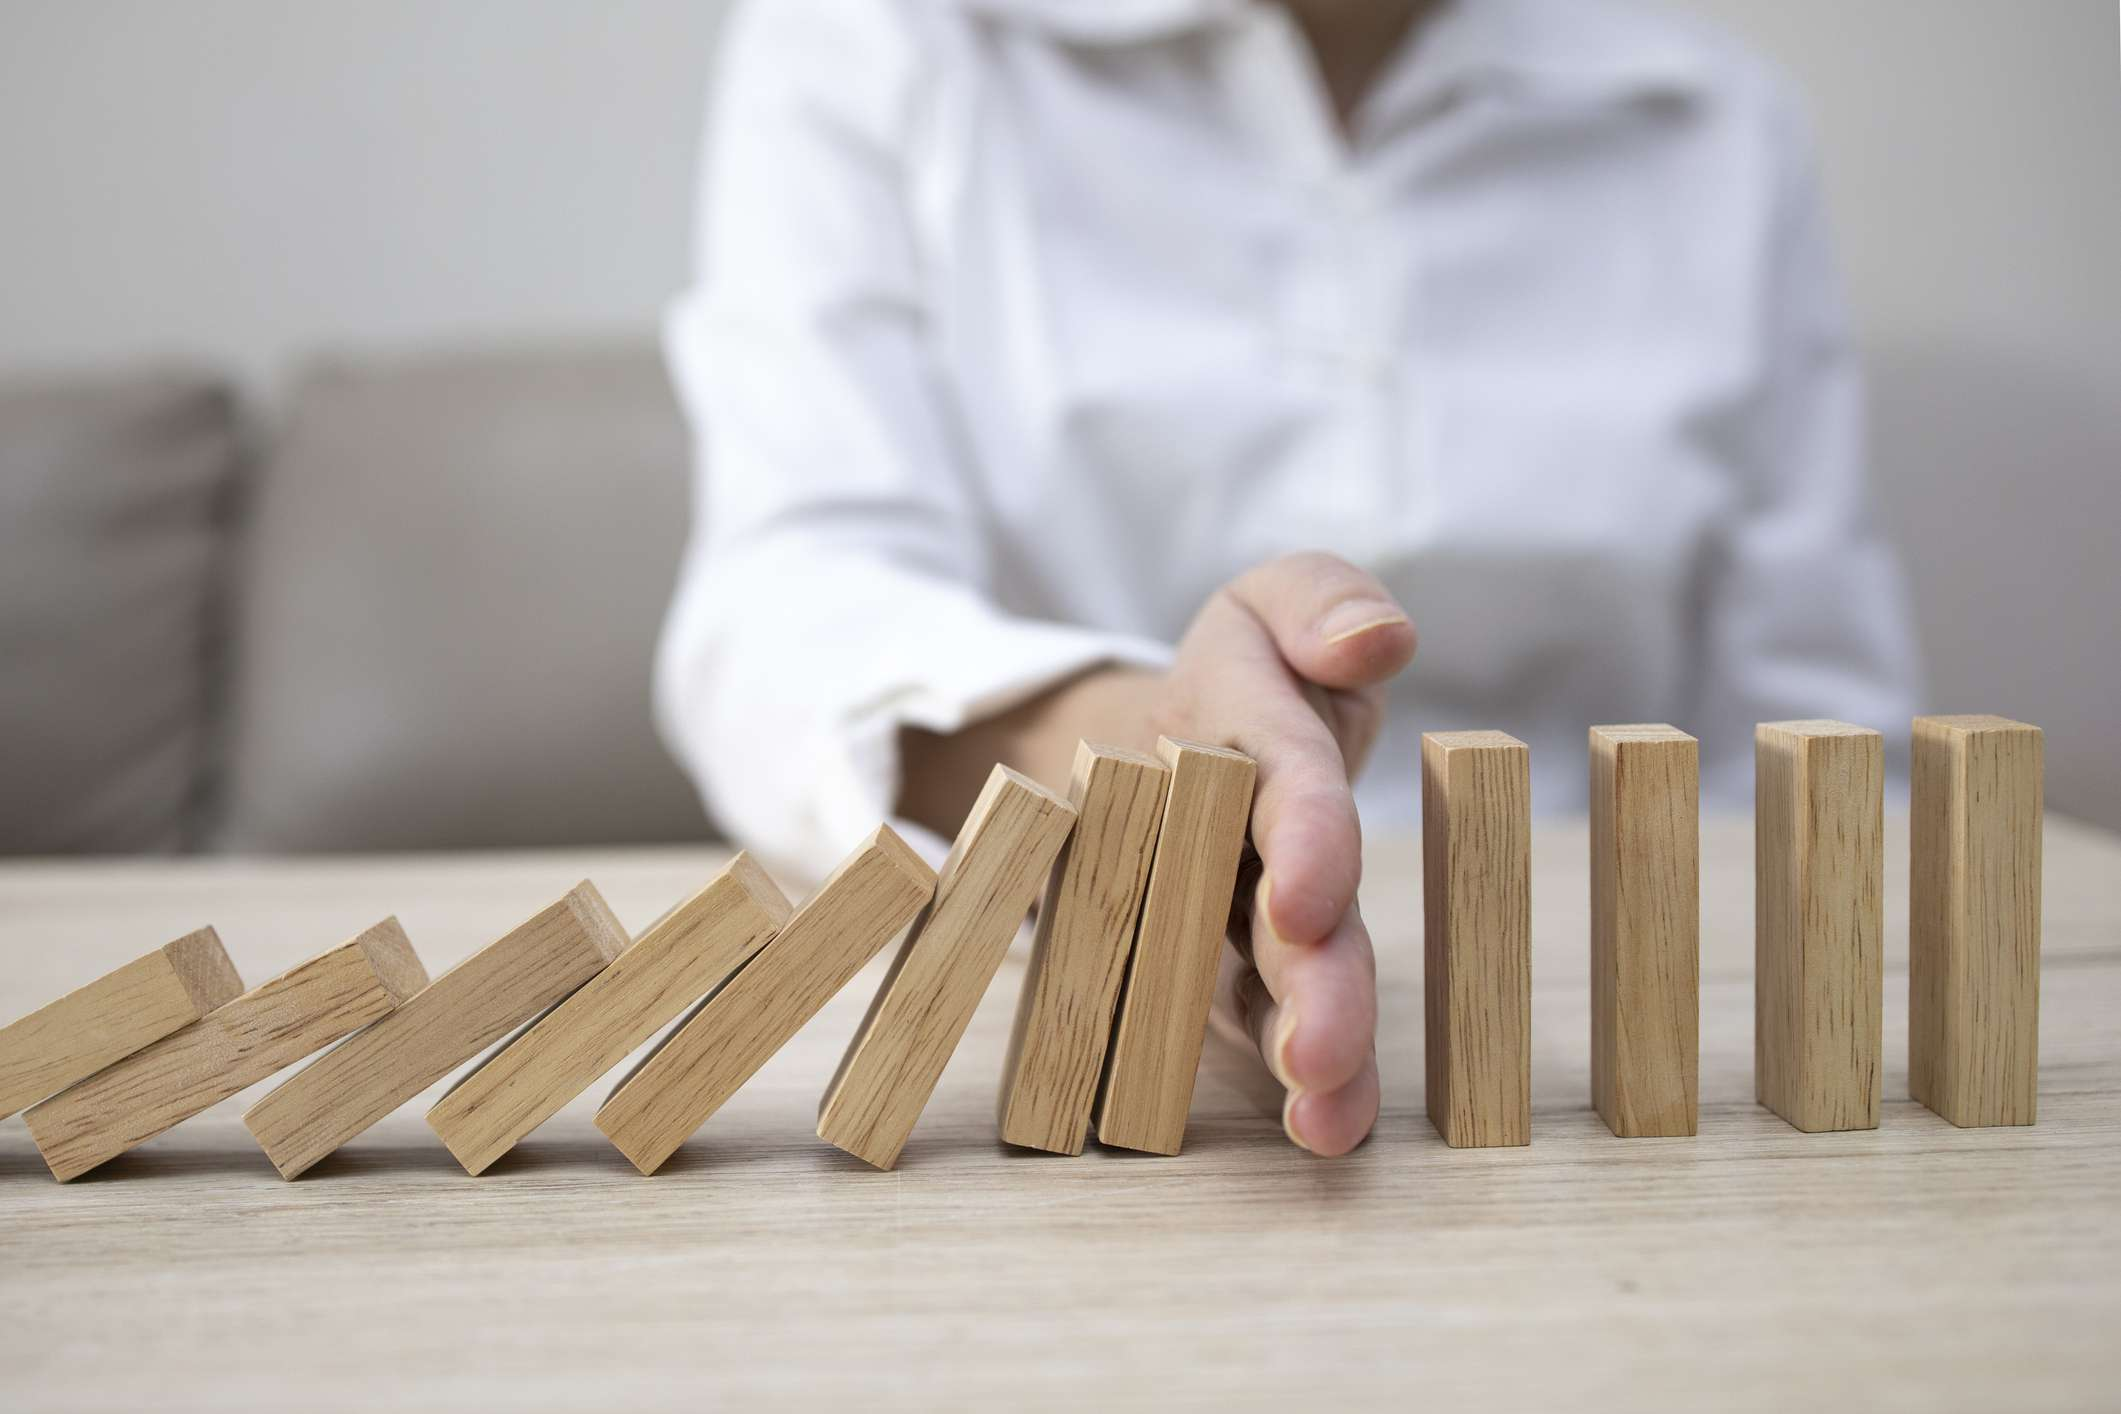 hand stopping wooden blocks from falling over